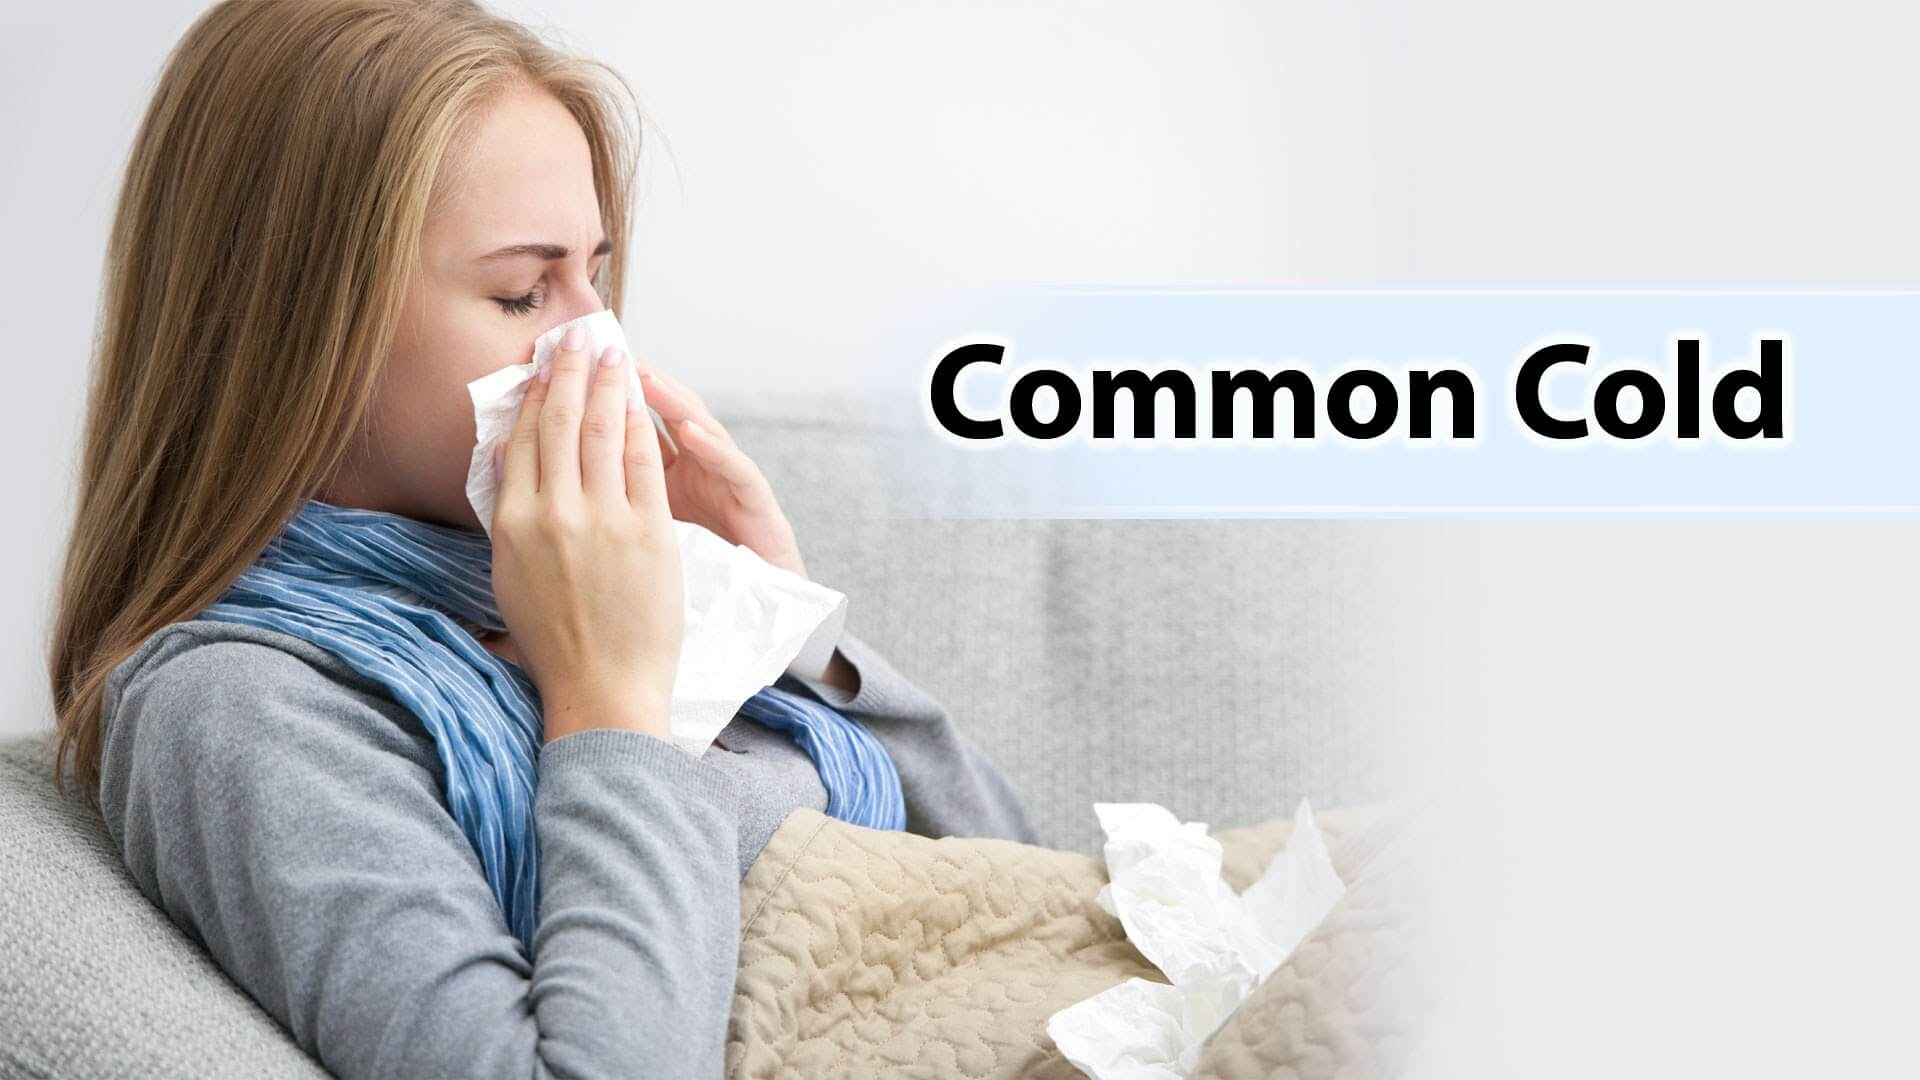 4 Weekly Homeopathic Remedies: Common Cold-common-cold, blog